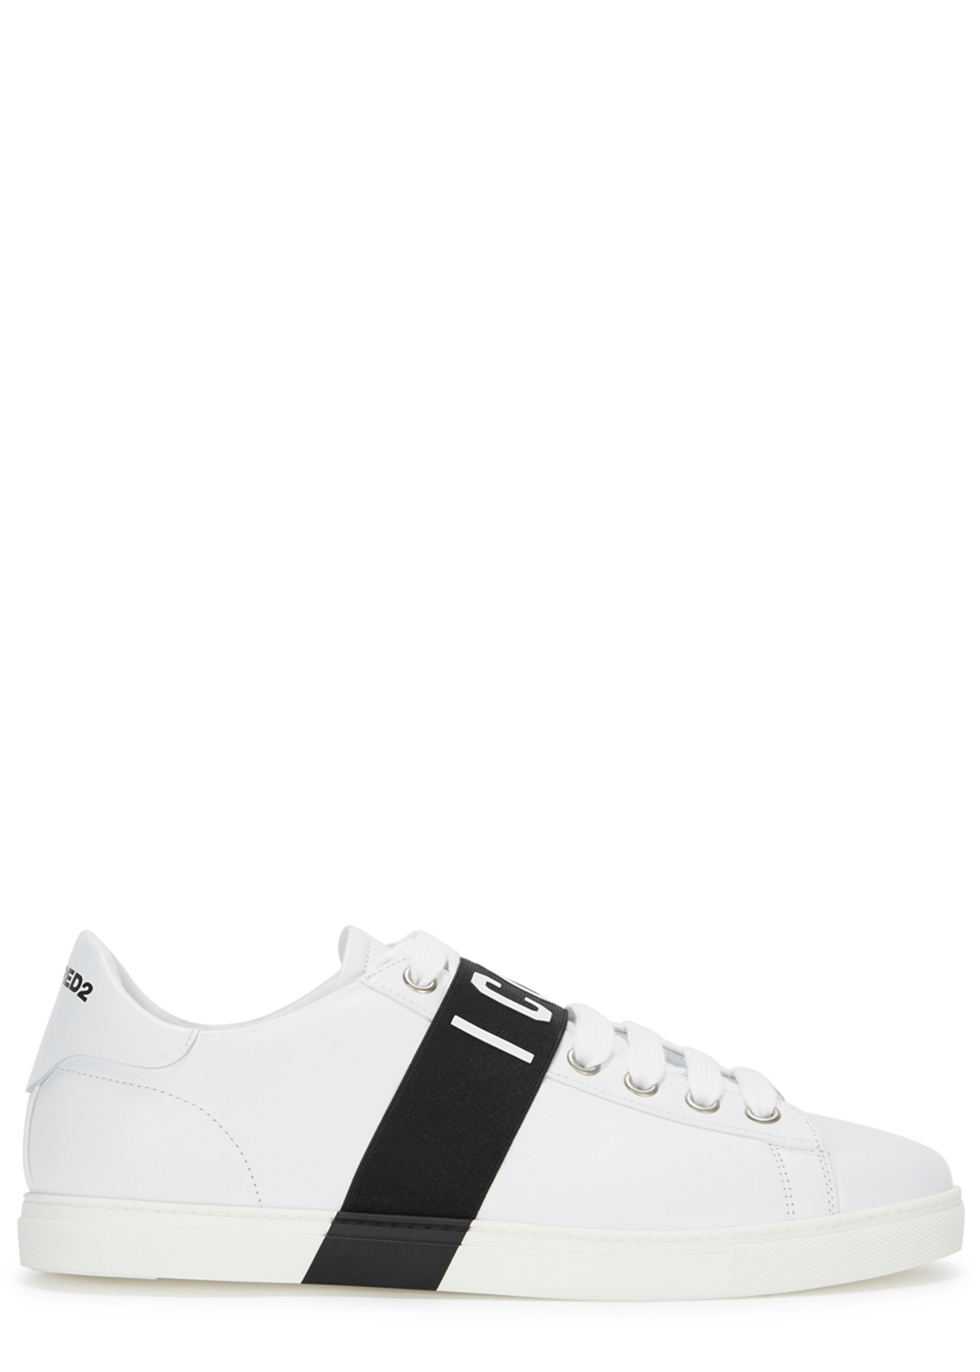 DSQUARED2 ICON WHITE LEATHER TRAINERS